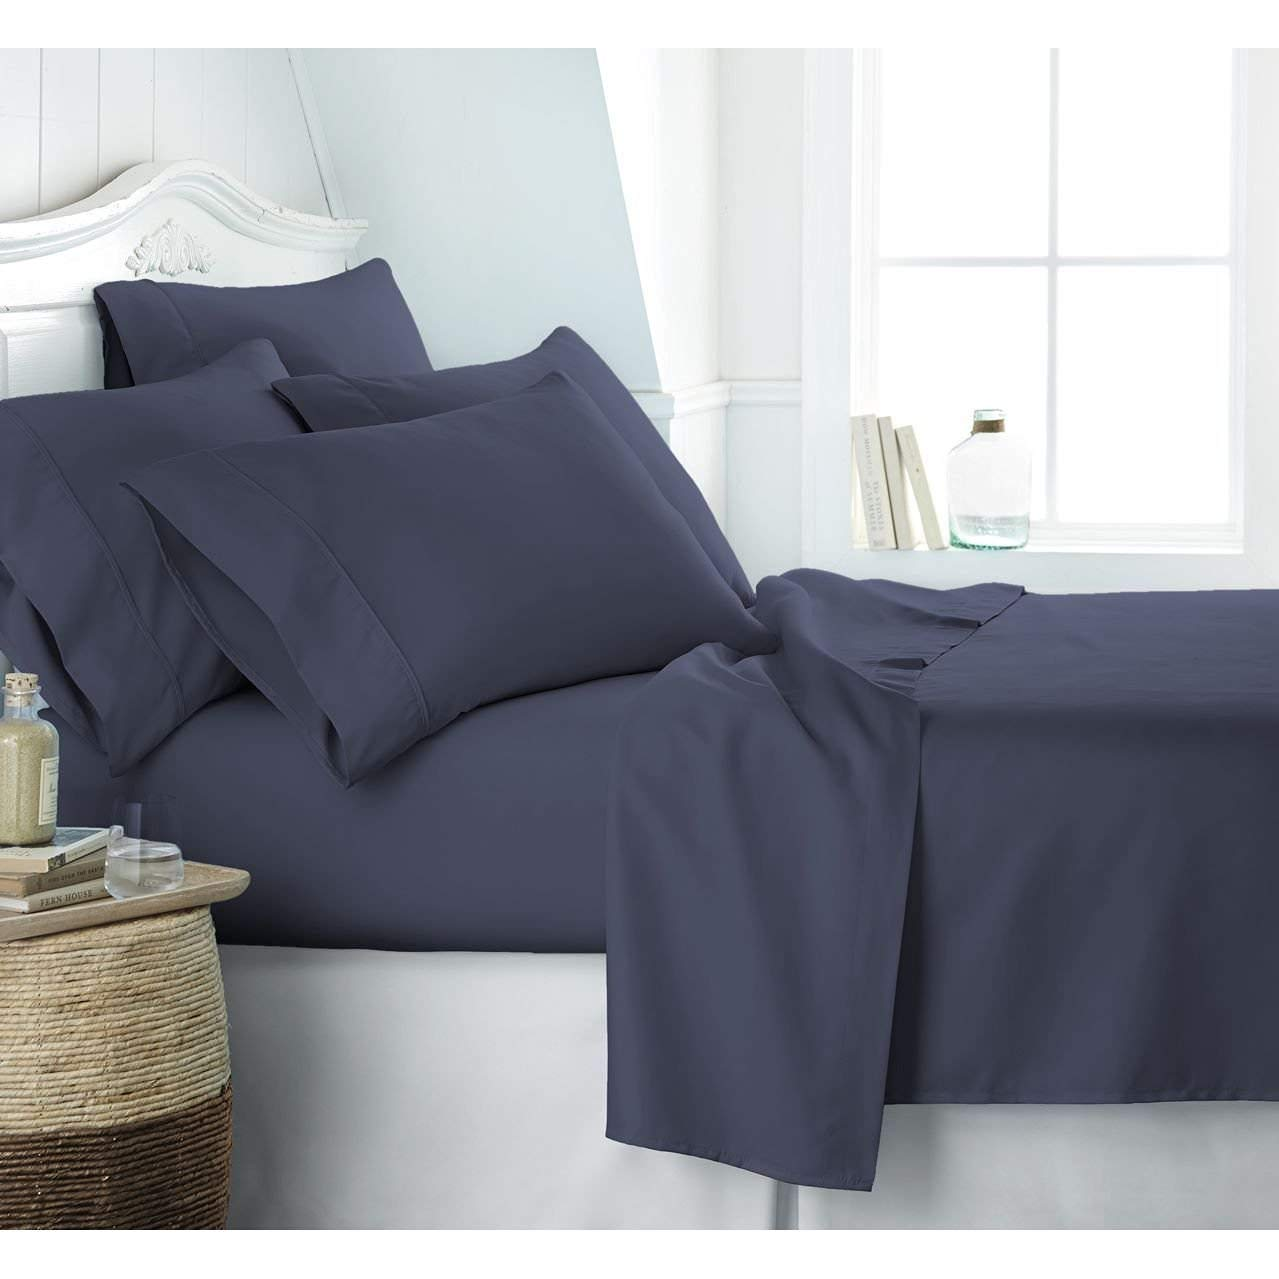 Cometa 6 PC Bedding Sheet Set - 1Flat Sheet, 1Fitted Sheet & 4Pillowcase - 400 Thread Count - 12 Inch Deep Pocket - 100% Pure Cotton Breathable & Wrinkle Free - Twin-XL, Navy Blue Solid